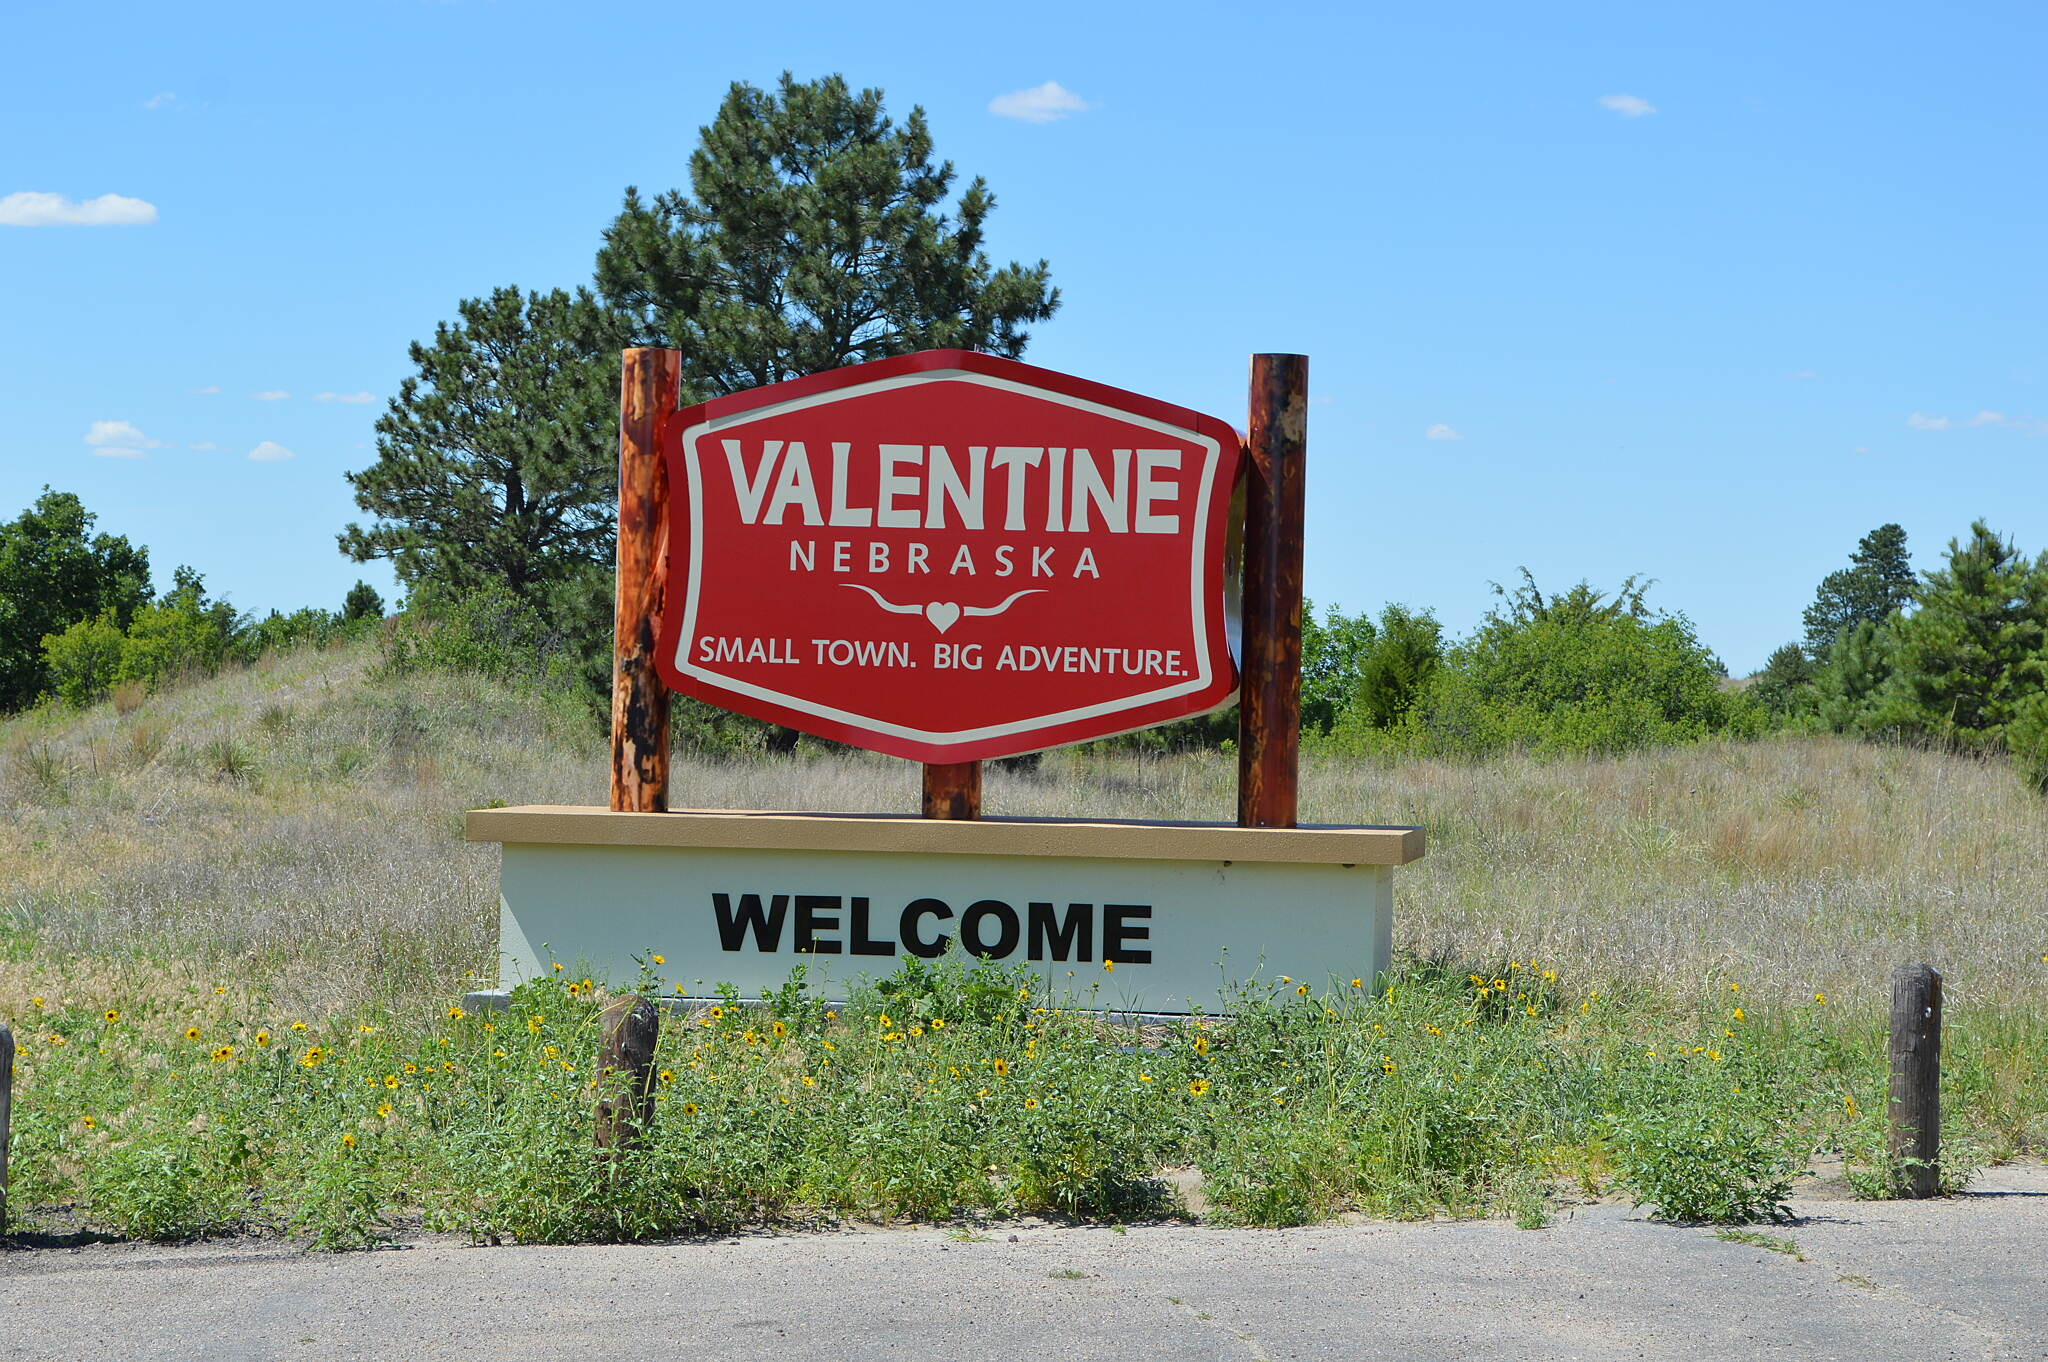 Cowboy Recreation and Nature Trail Valentine Nebraska Easy access to the large bridge before entering Valentine.